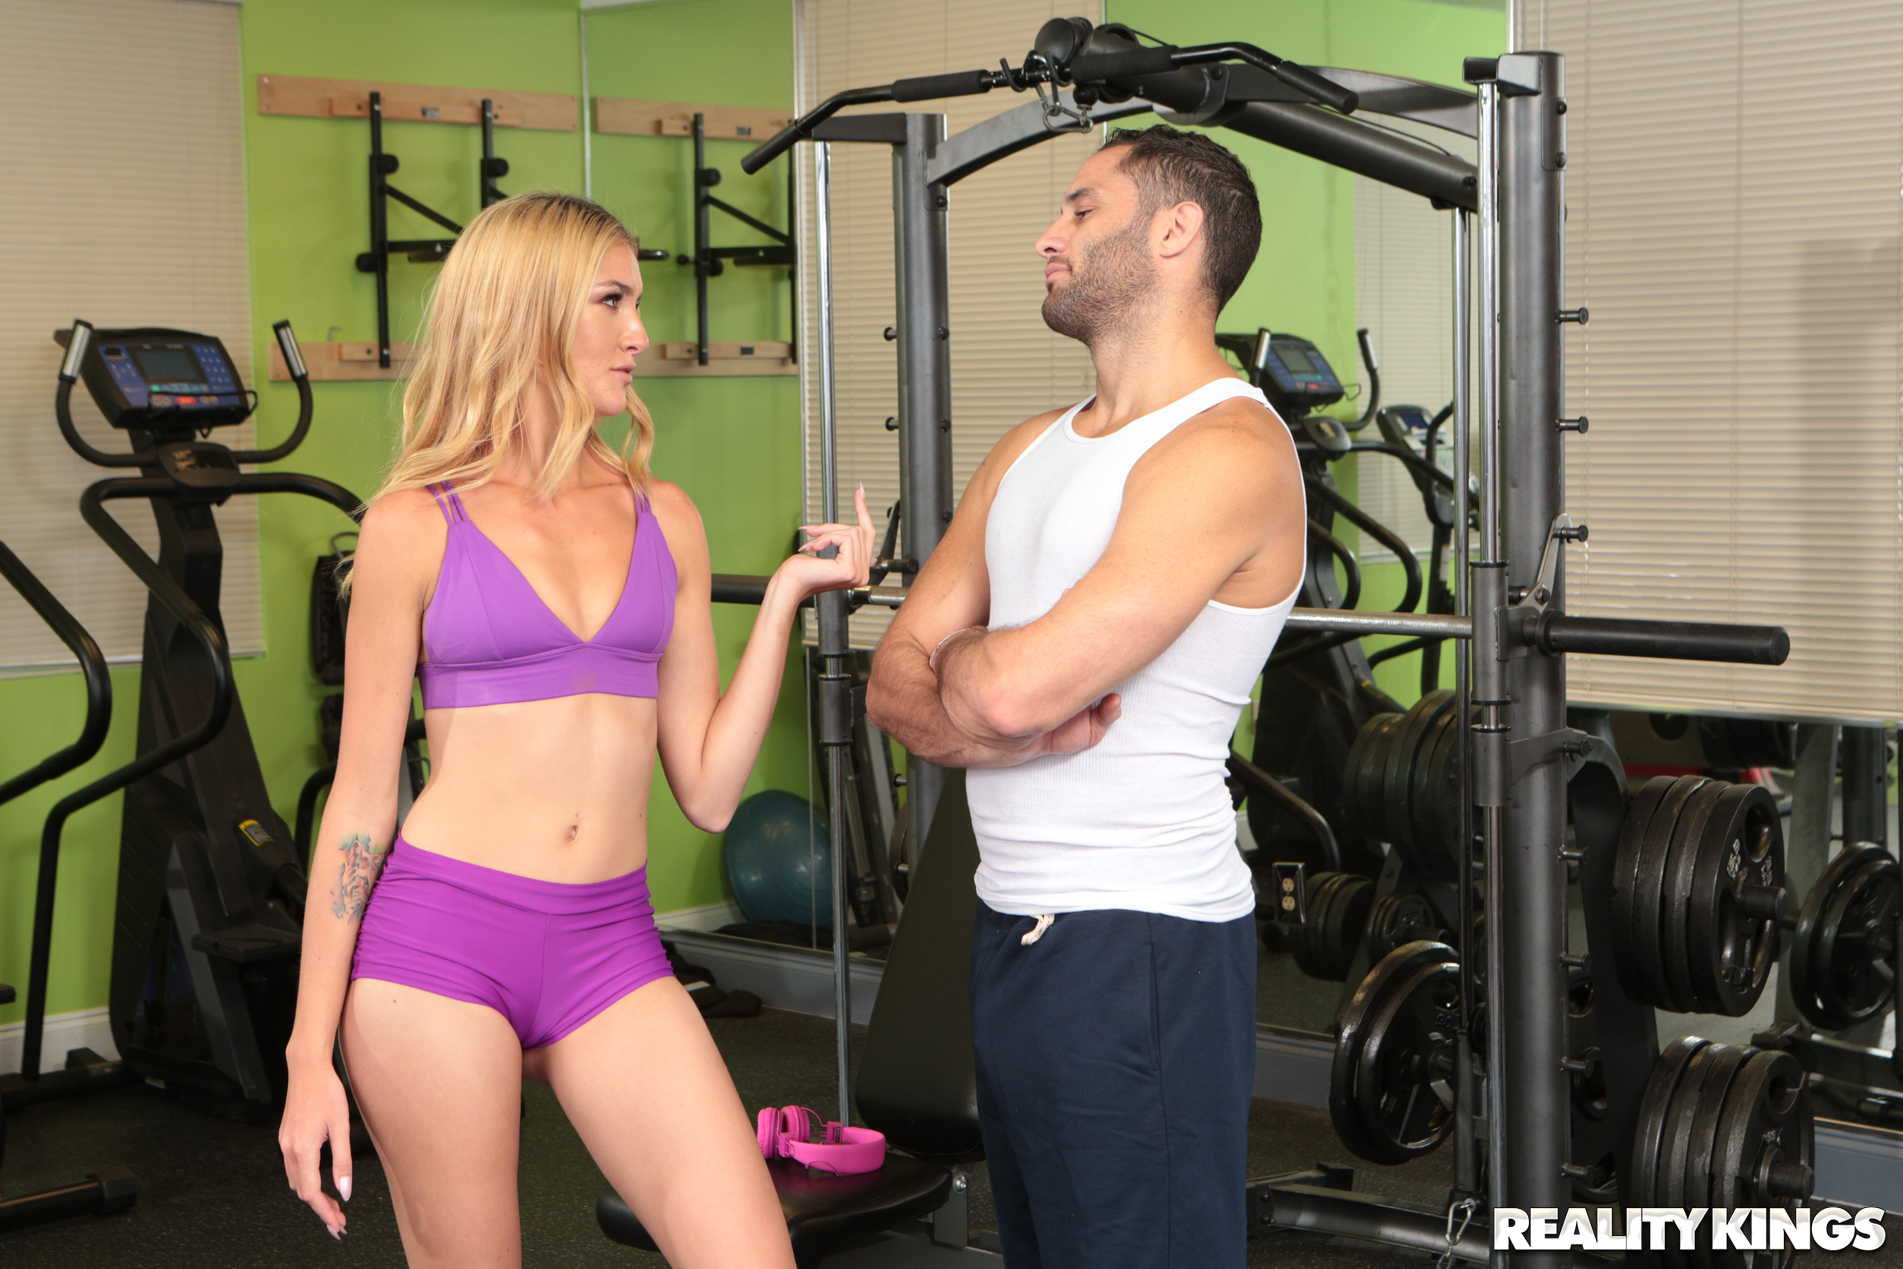 Reality Kings 'Body Blow Your Load' starring Mazzy Grace (Photo 60)